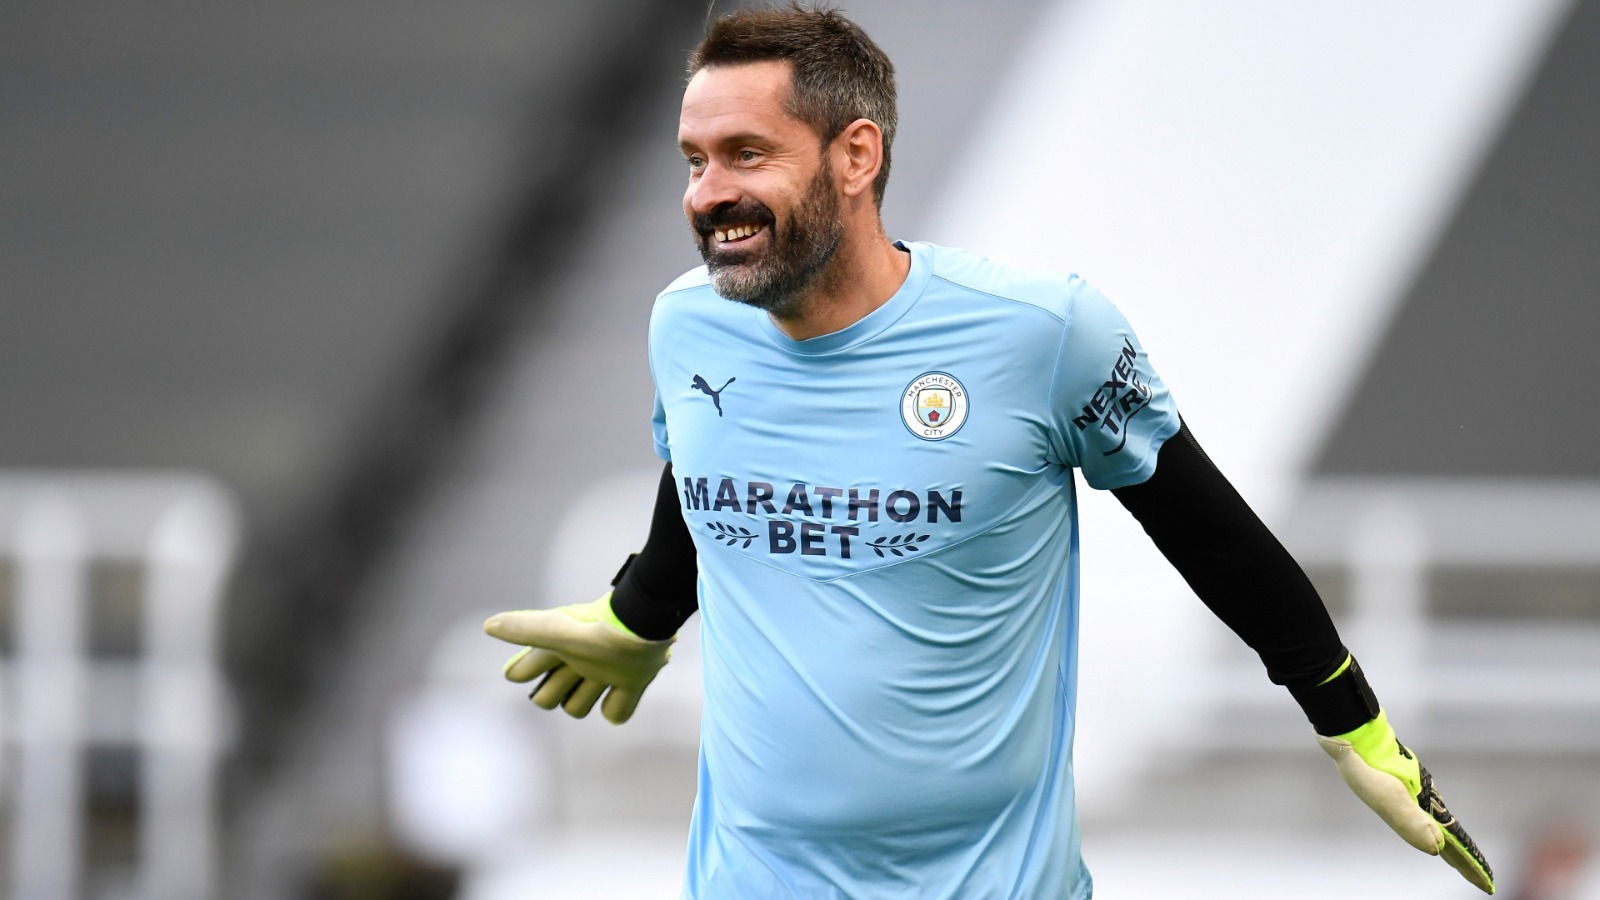 Scott Carson made Manchester City debut and gained all the love at full time